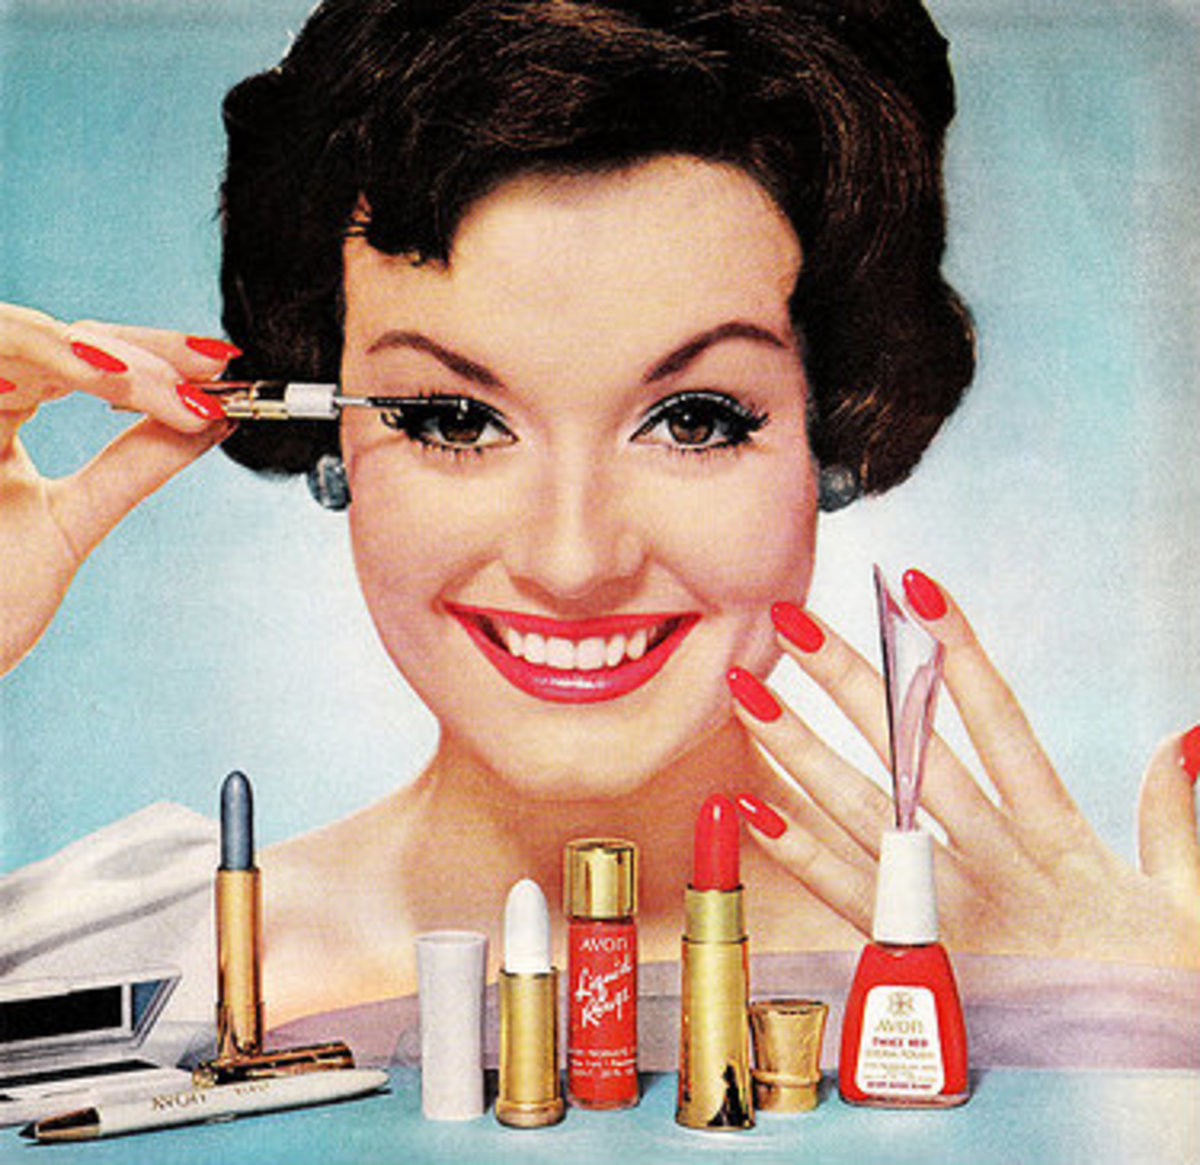 Nickel Allergy: Makeup Products